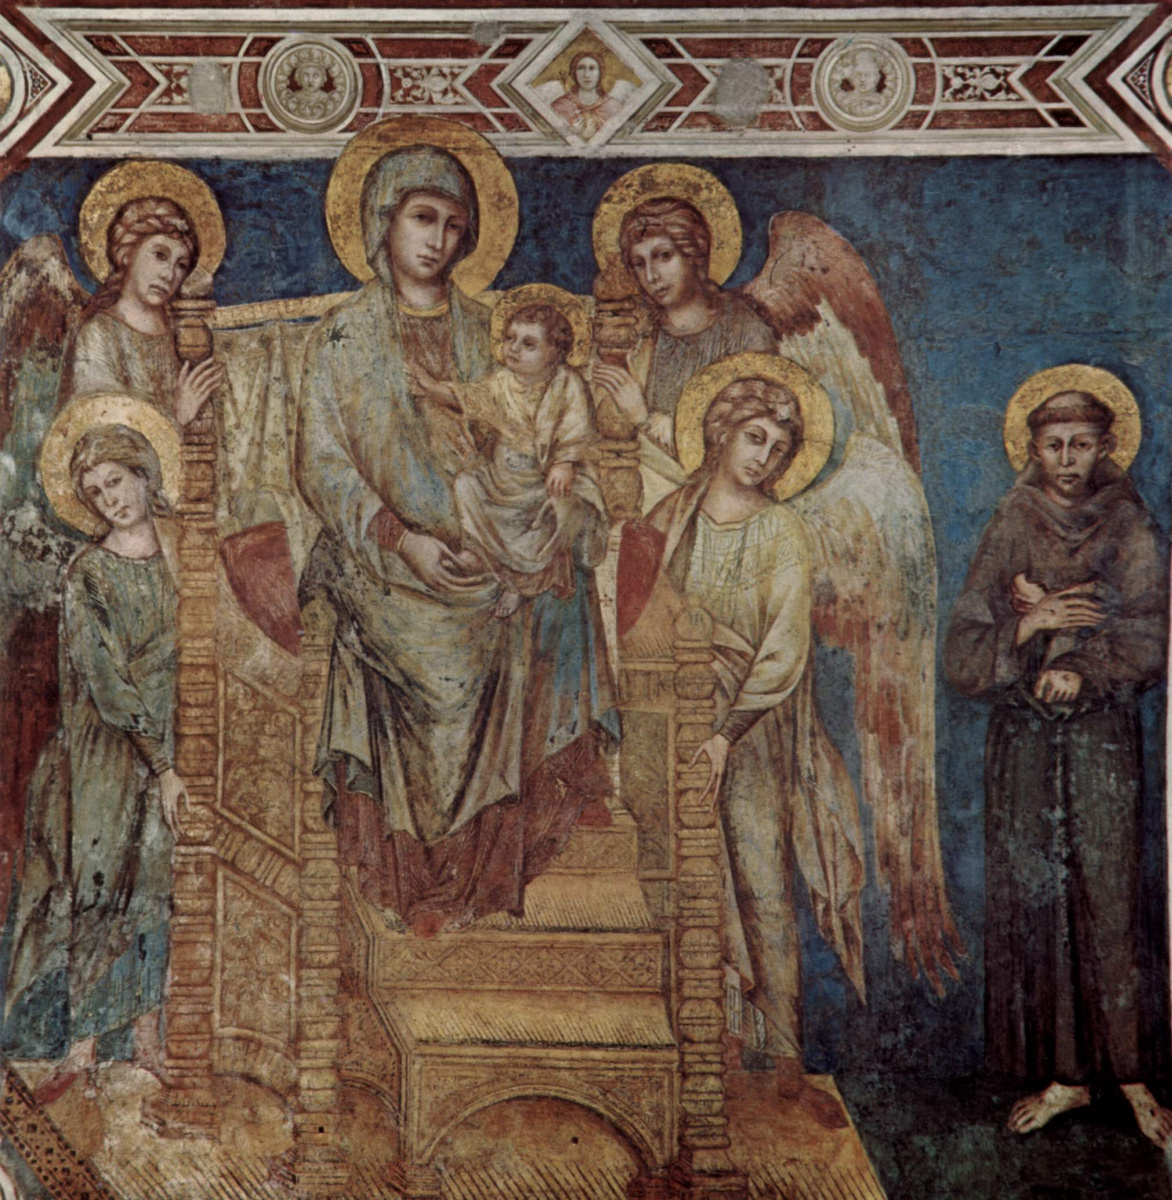 Cimabue (Chenny di Pepo). The frescoes of the Lower Church of San Francesco in Assisi, the nave on the right: Madonna enthroned, four angels and St. Francis